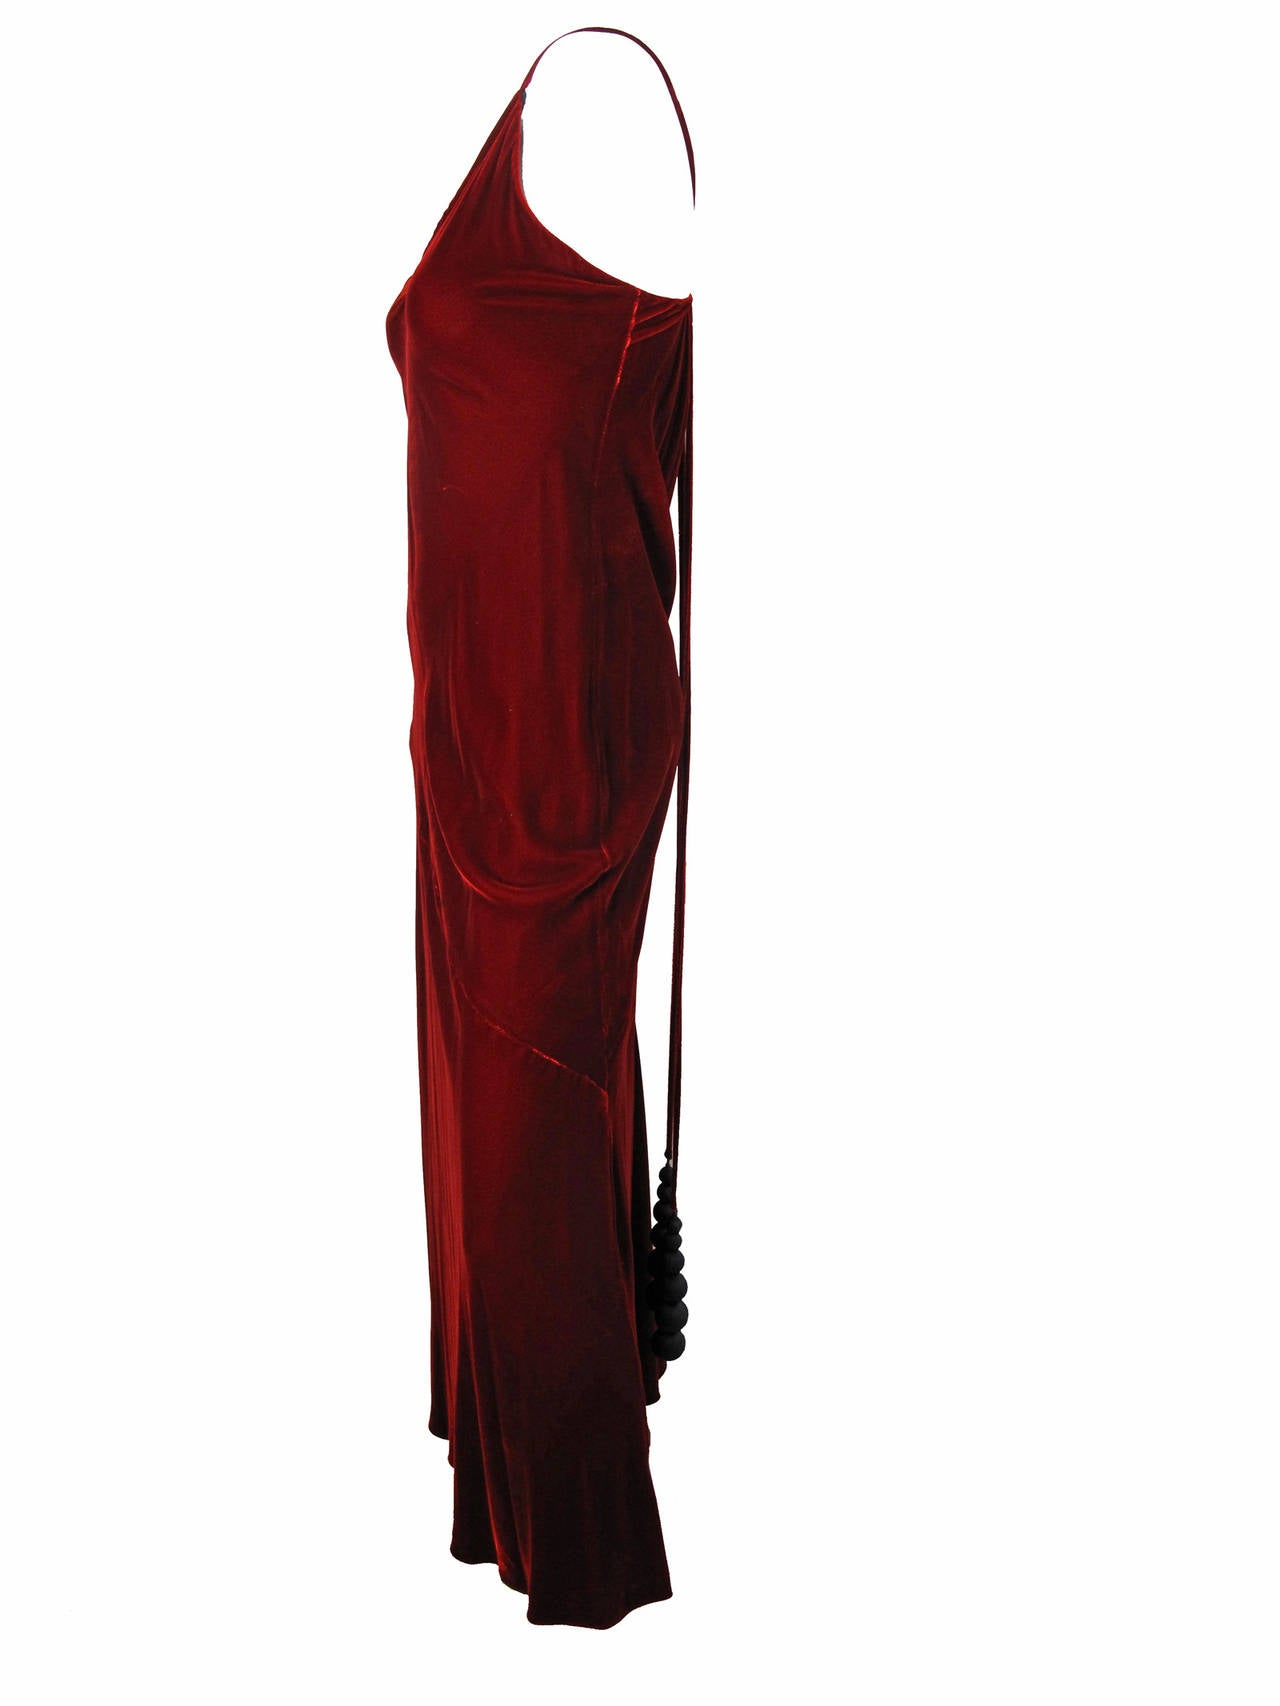 1990s Jean Paul Gaultier Velvet Gown with Large Fabric Beads 3